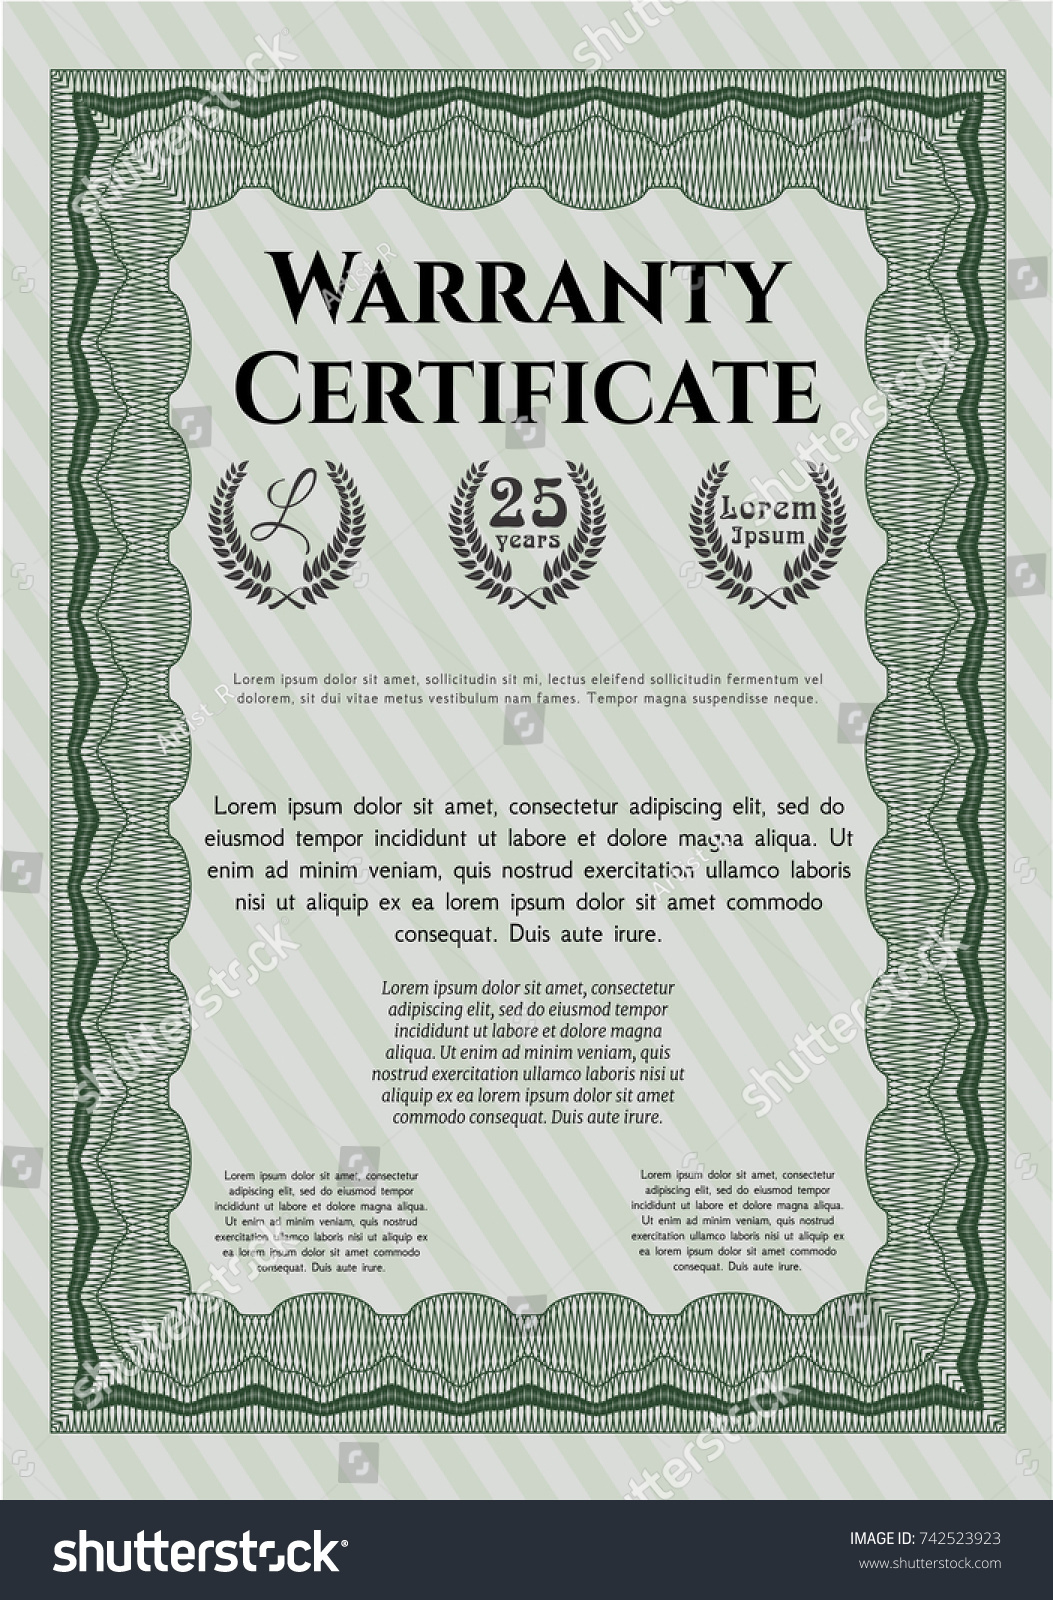 Green warranty certificate template customizable easy stock vector green warranty certificate template customizable easy to edit and change colors with linear 1betcityfo Choice Image